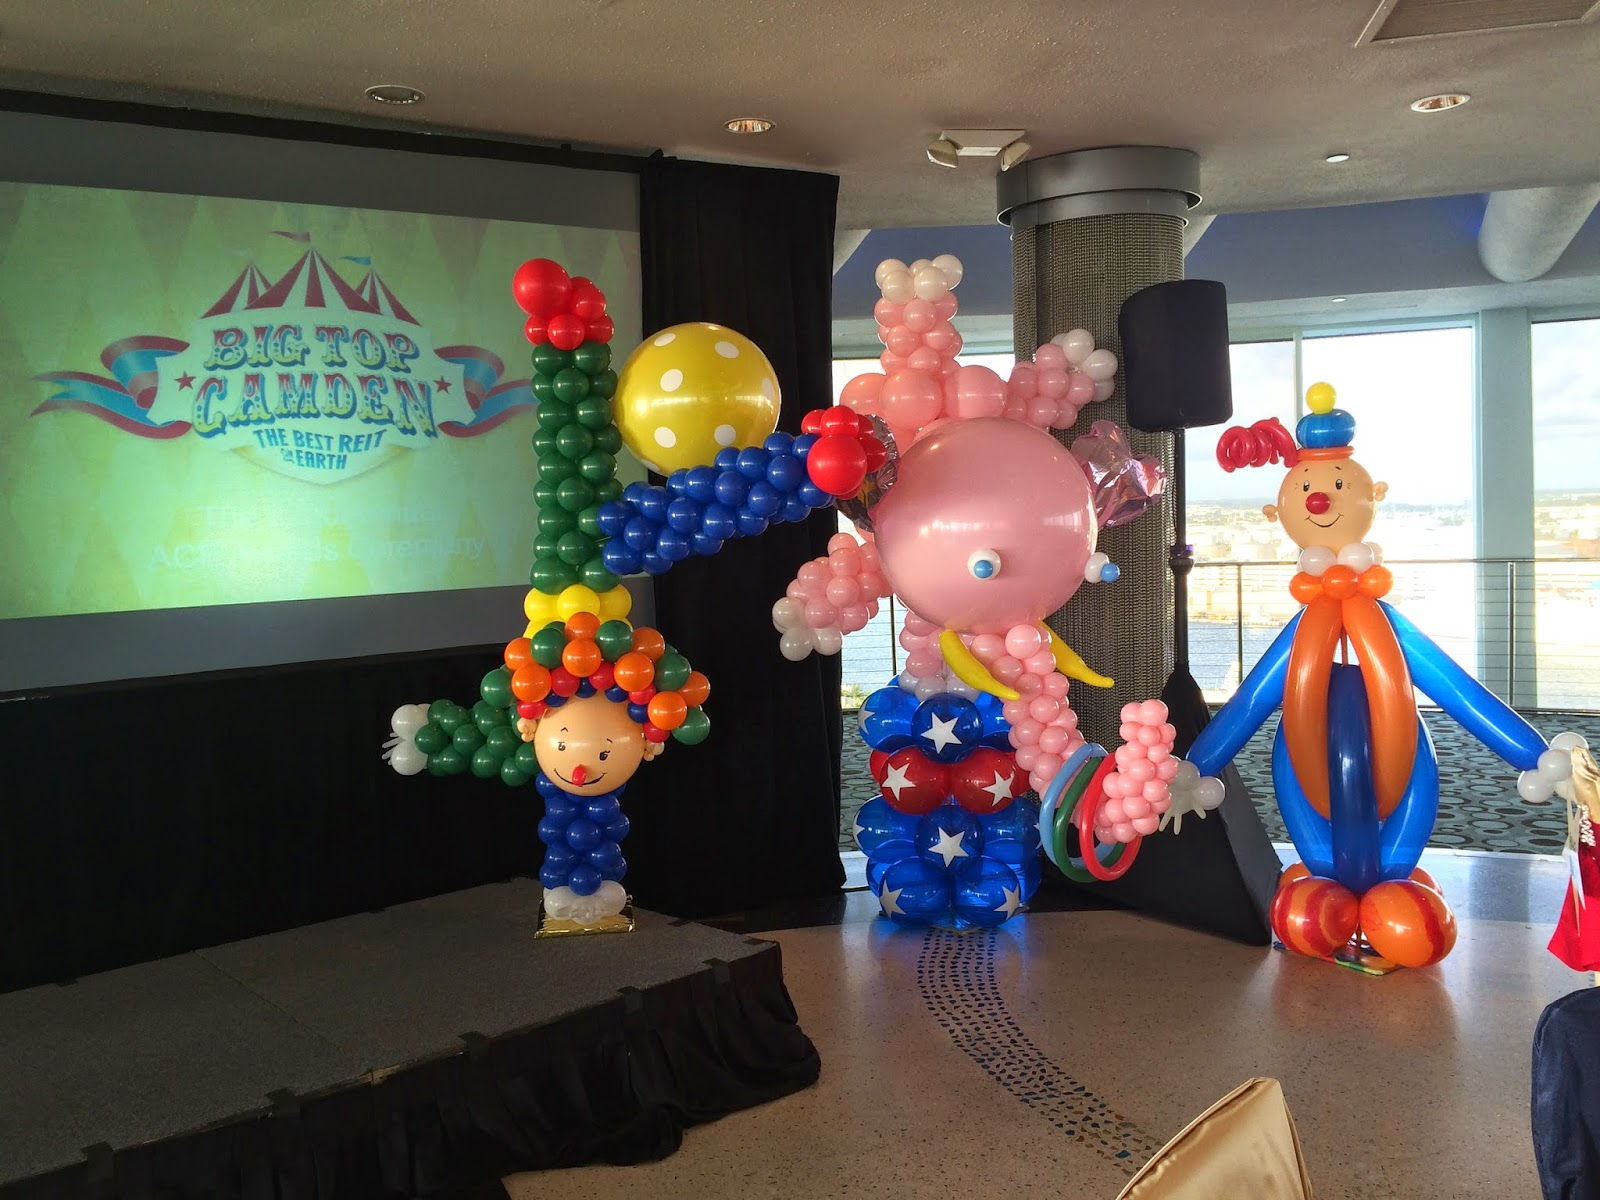 Circus animals sculpture, clown, elephant balloon scupture